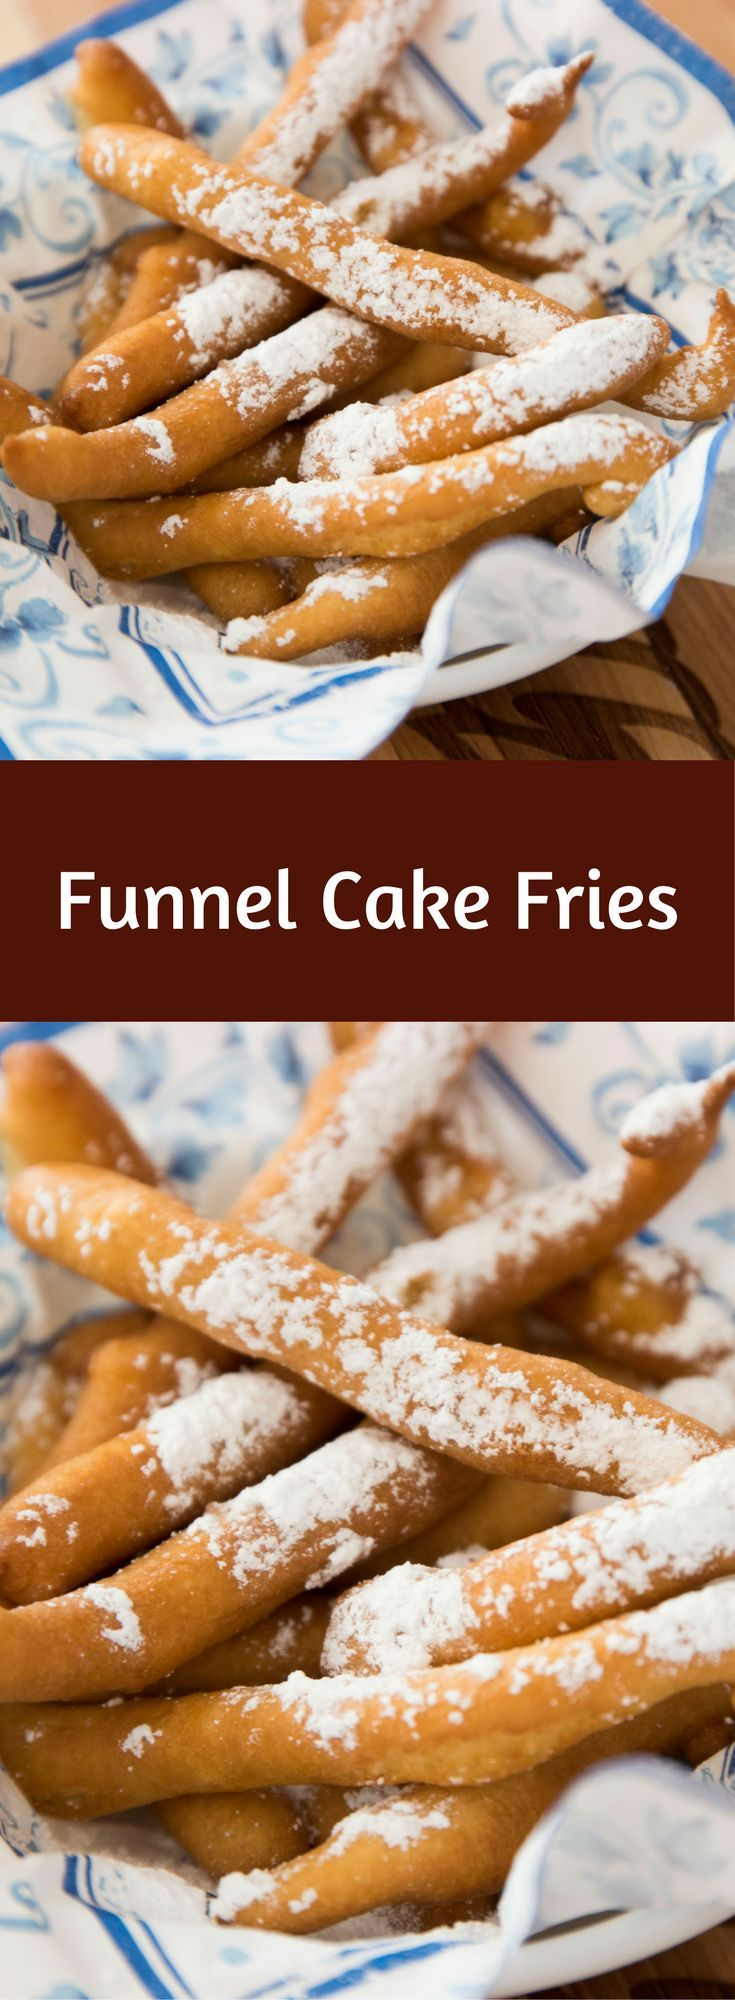 Funnel Cake Fries are one of the most incredible fries you will ever have! You can't resist these light and airy cake fries! Perfect for desserts, snacks or a fun party!